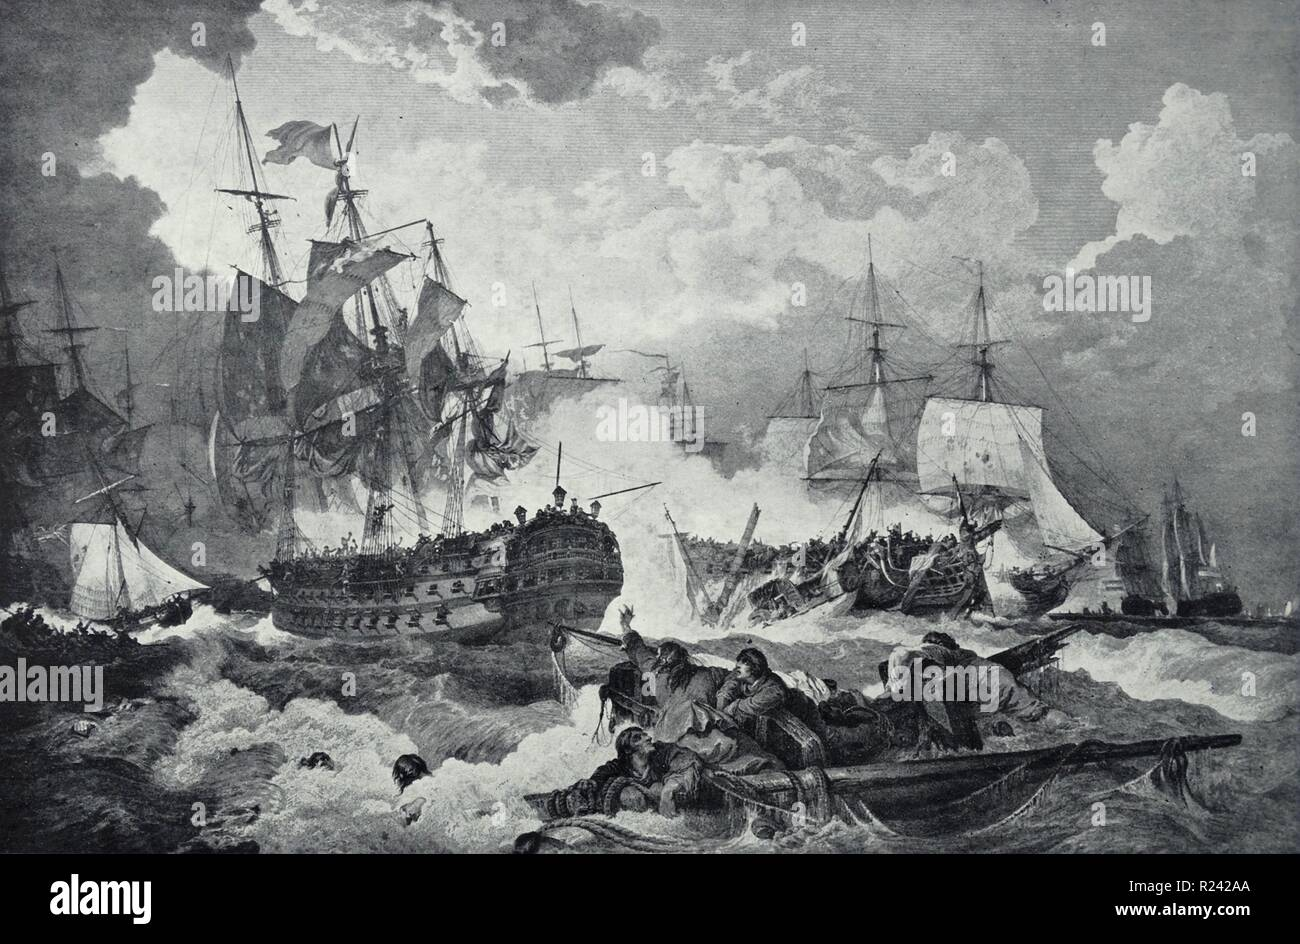 Line engraving depicting the Battle of Camperdown. Duncan in the Venerable to Leeward of the dismasted Vrijheid. Engraved by J. Fittler. Dated 1797 - Stock Image